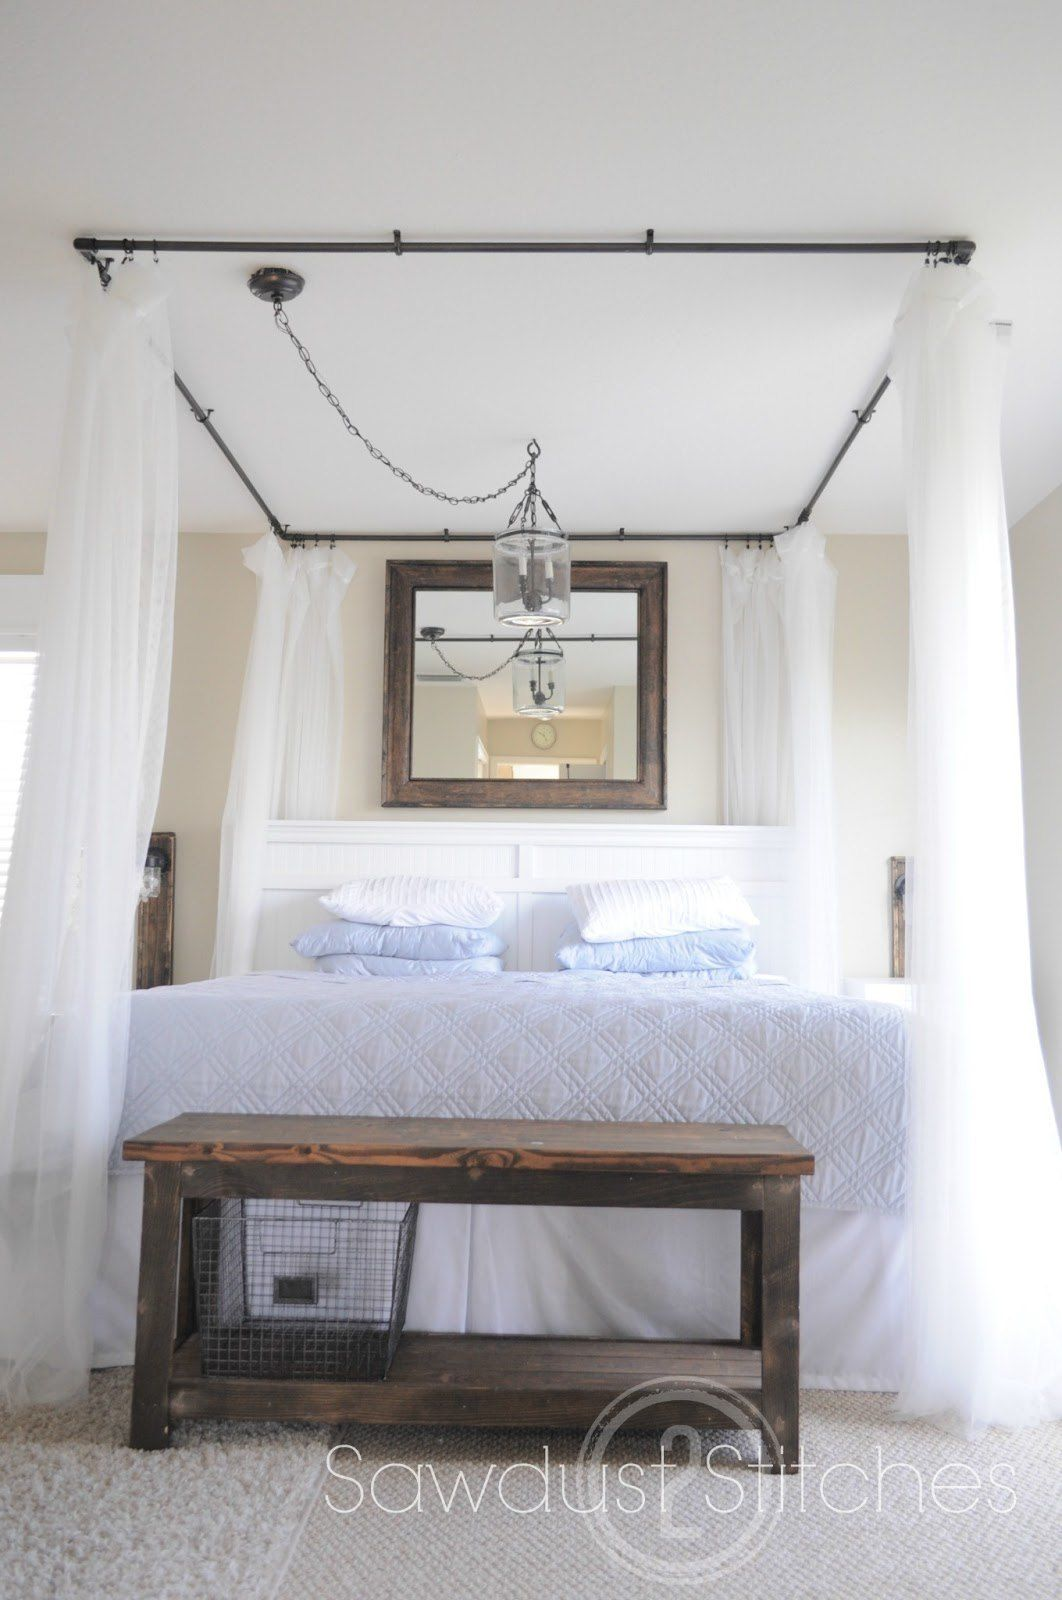 Charmant PVC Pipes And Spray Paint! Might Do This In My Moms Master Bedroom As A  Birthday Suprise! Take It From Me: DIY Canopy Bed Tutorial (Guest Post)